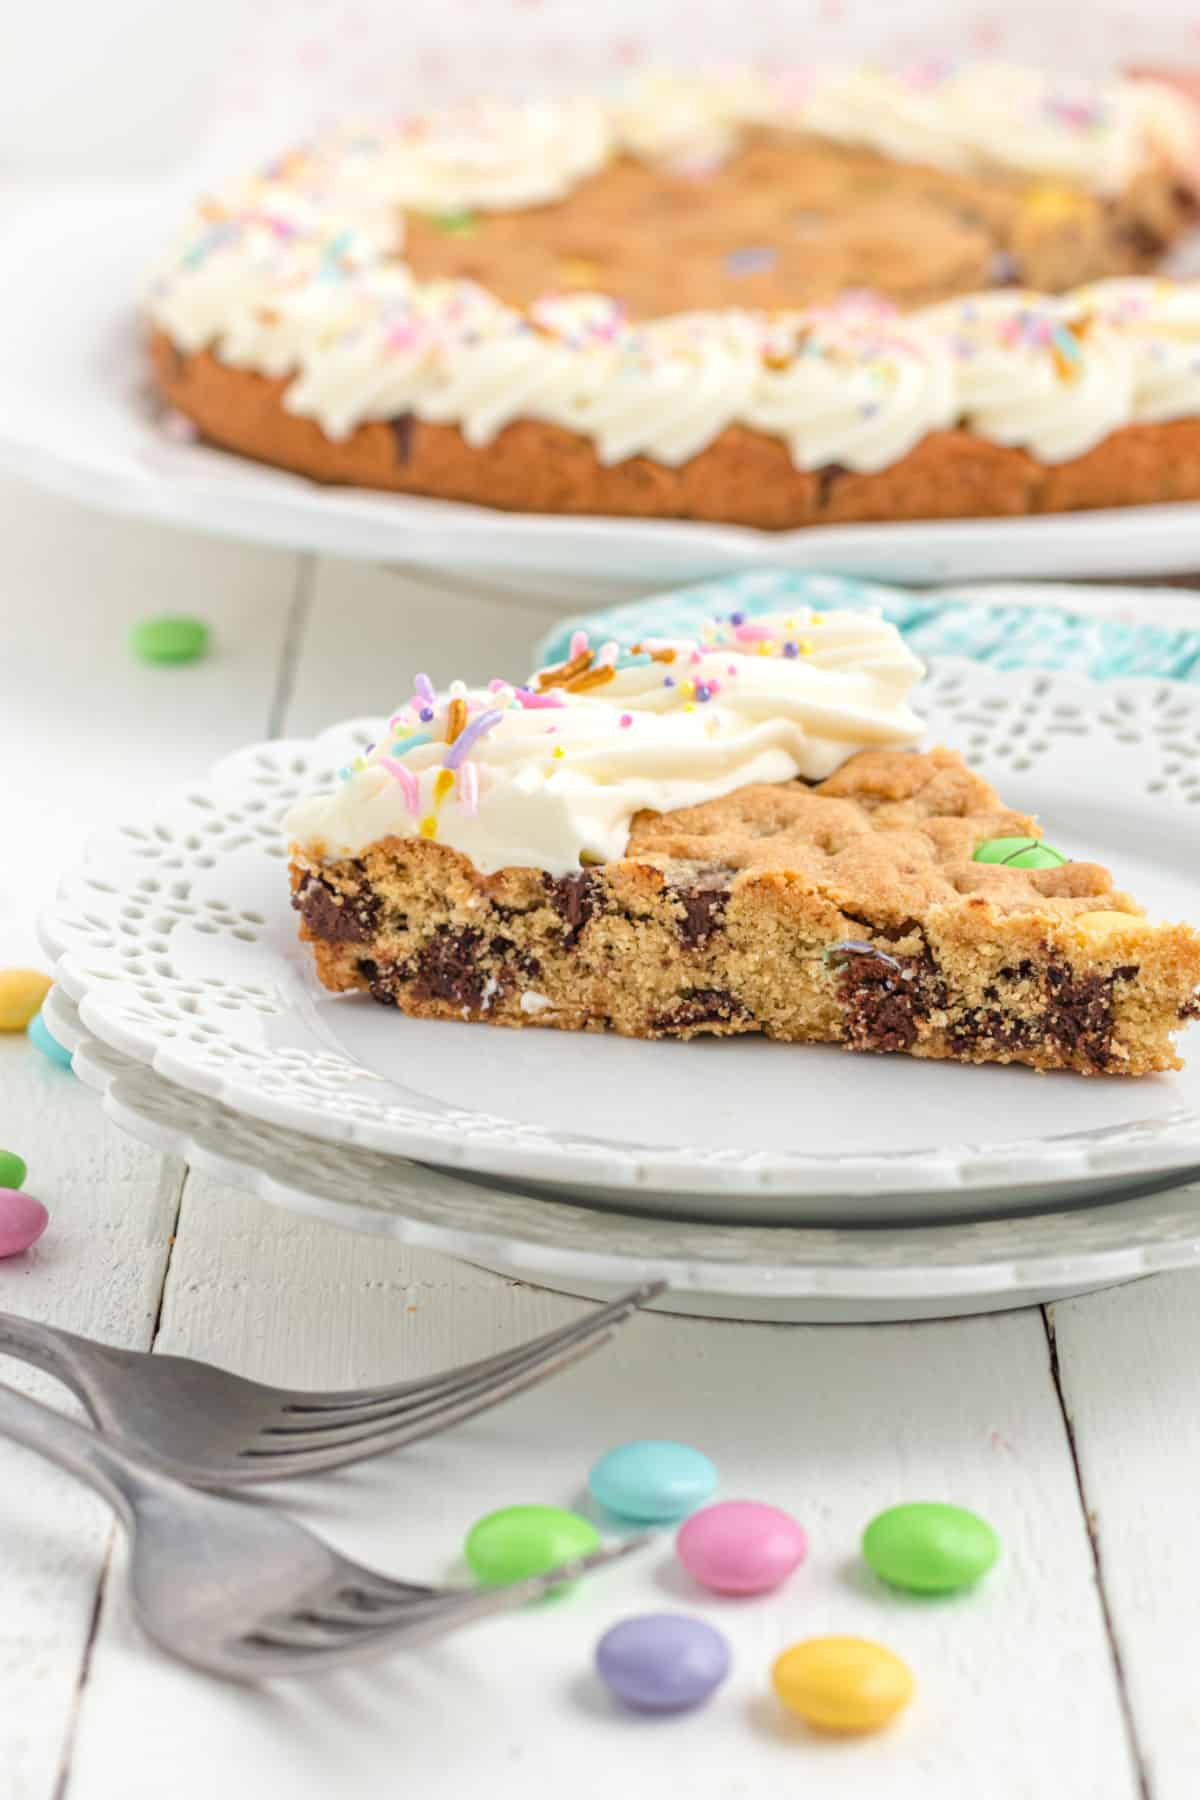 Slice of chocolate chip cookie cake on a white plate.